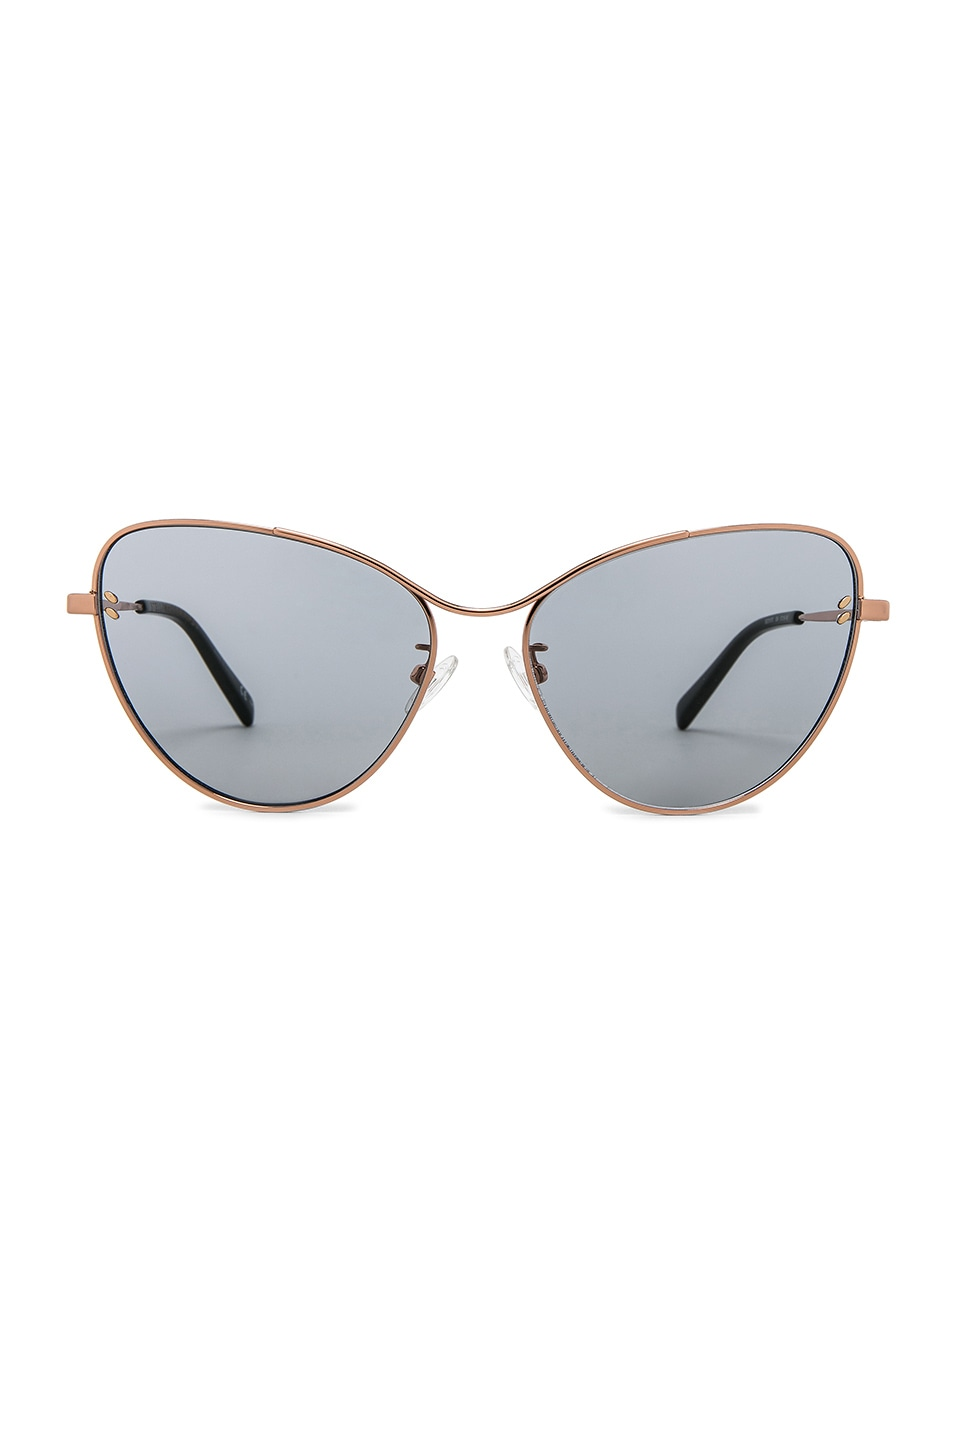 Stella McCartney Cateye Metal in Gold & Smoke